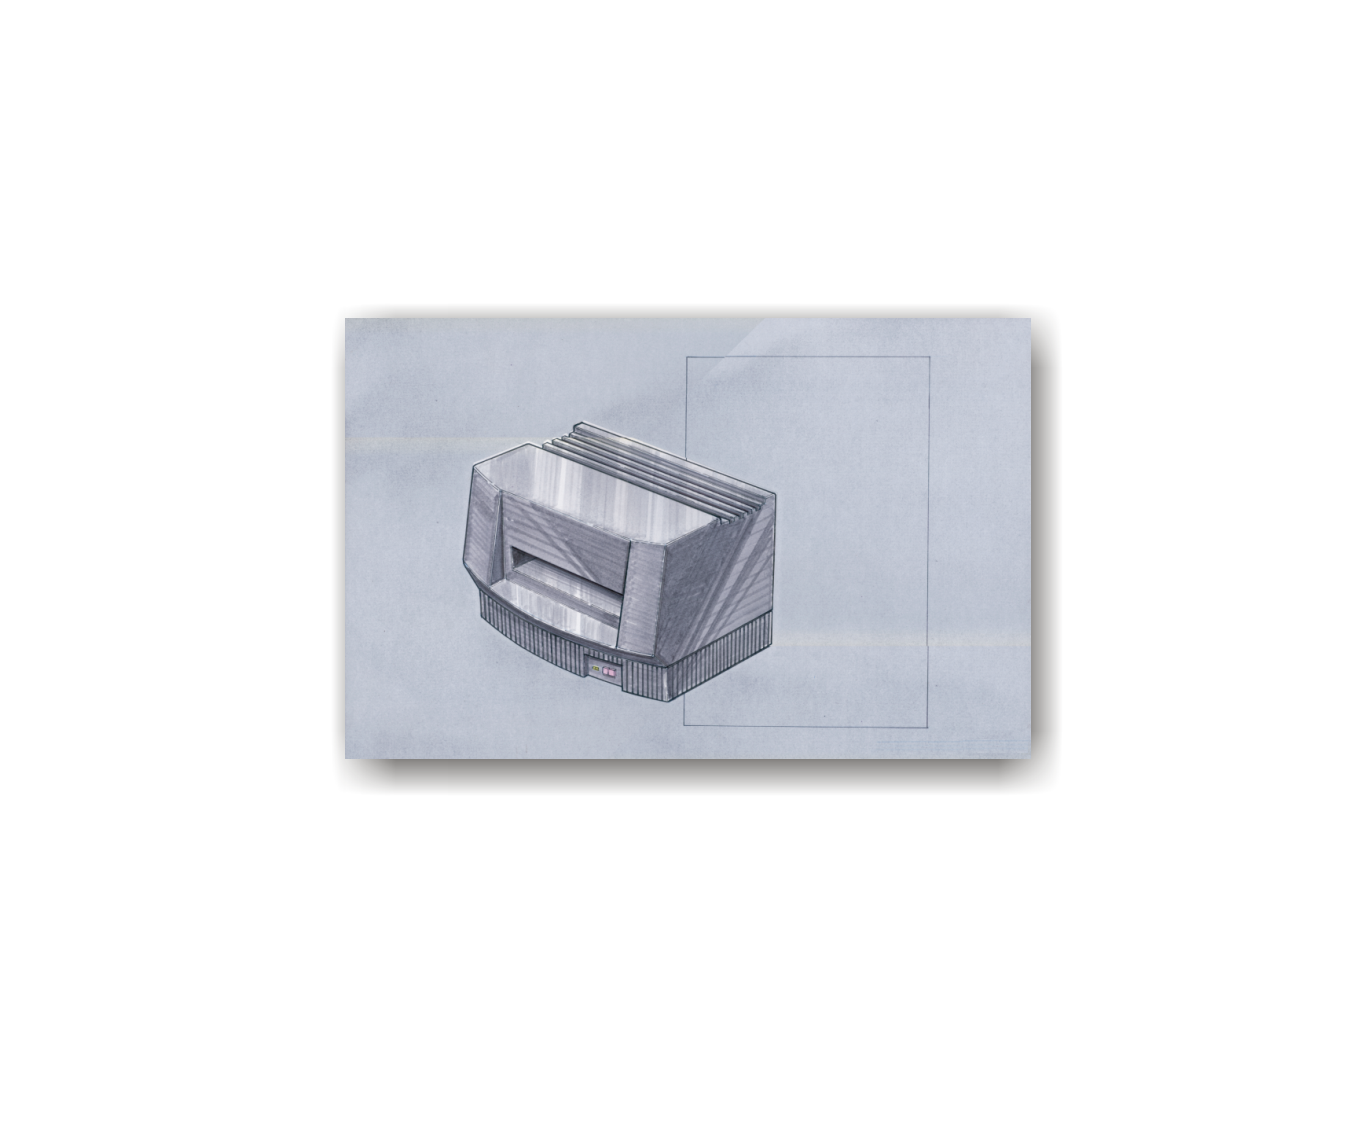 Thermal Printer - concept sketch